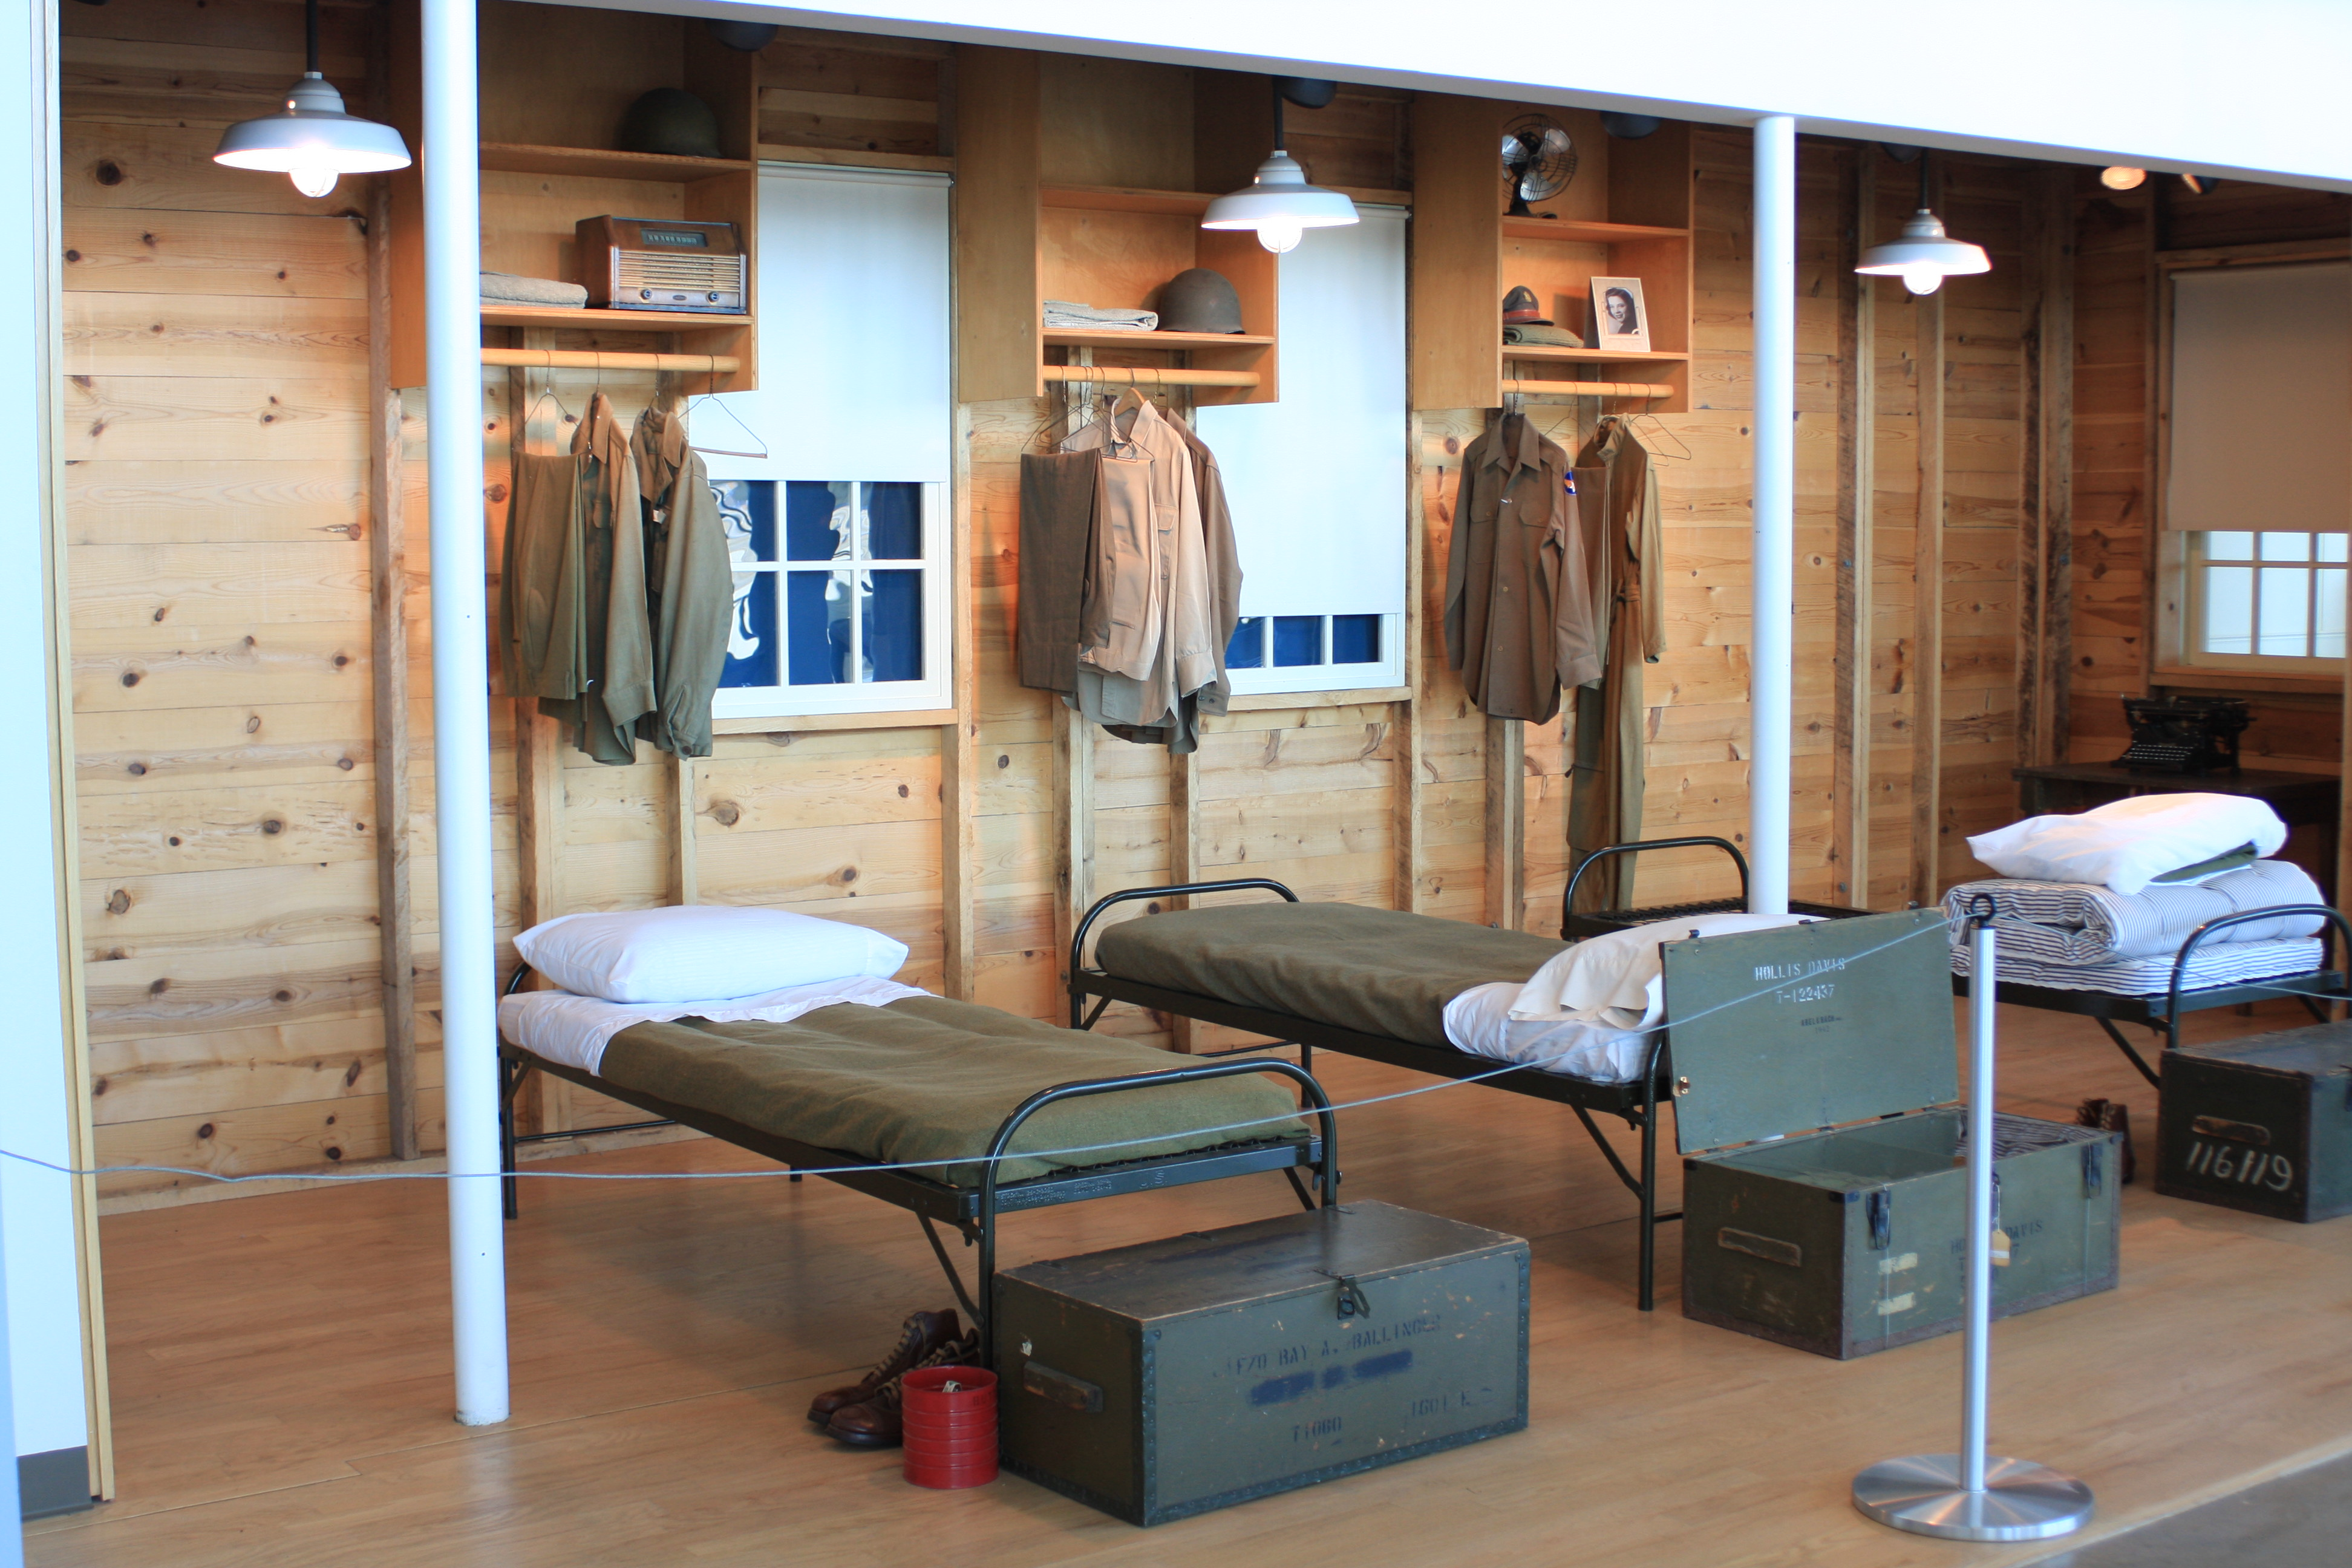 Barracks Room Decorating Ideas